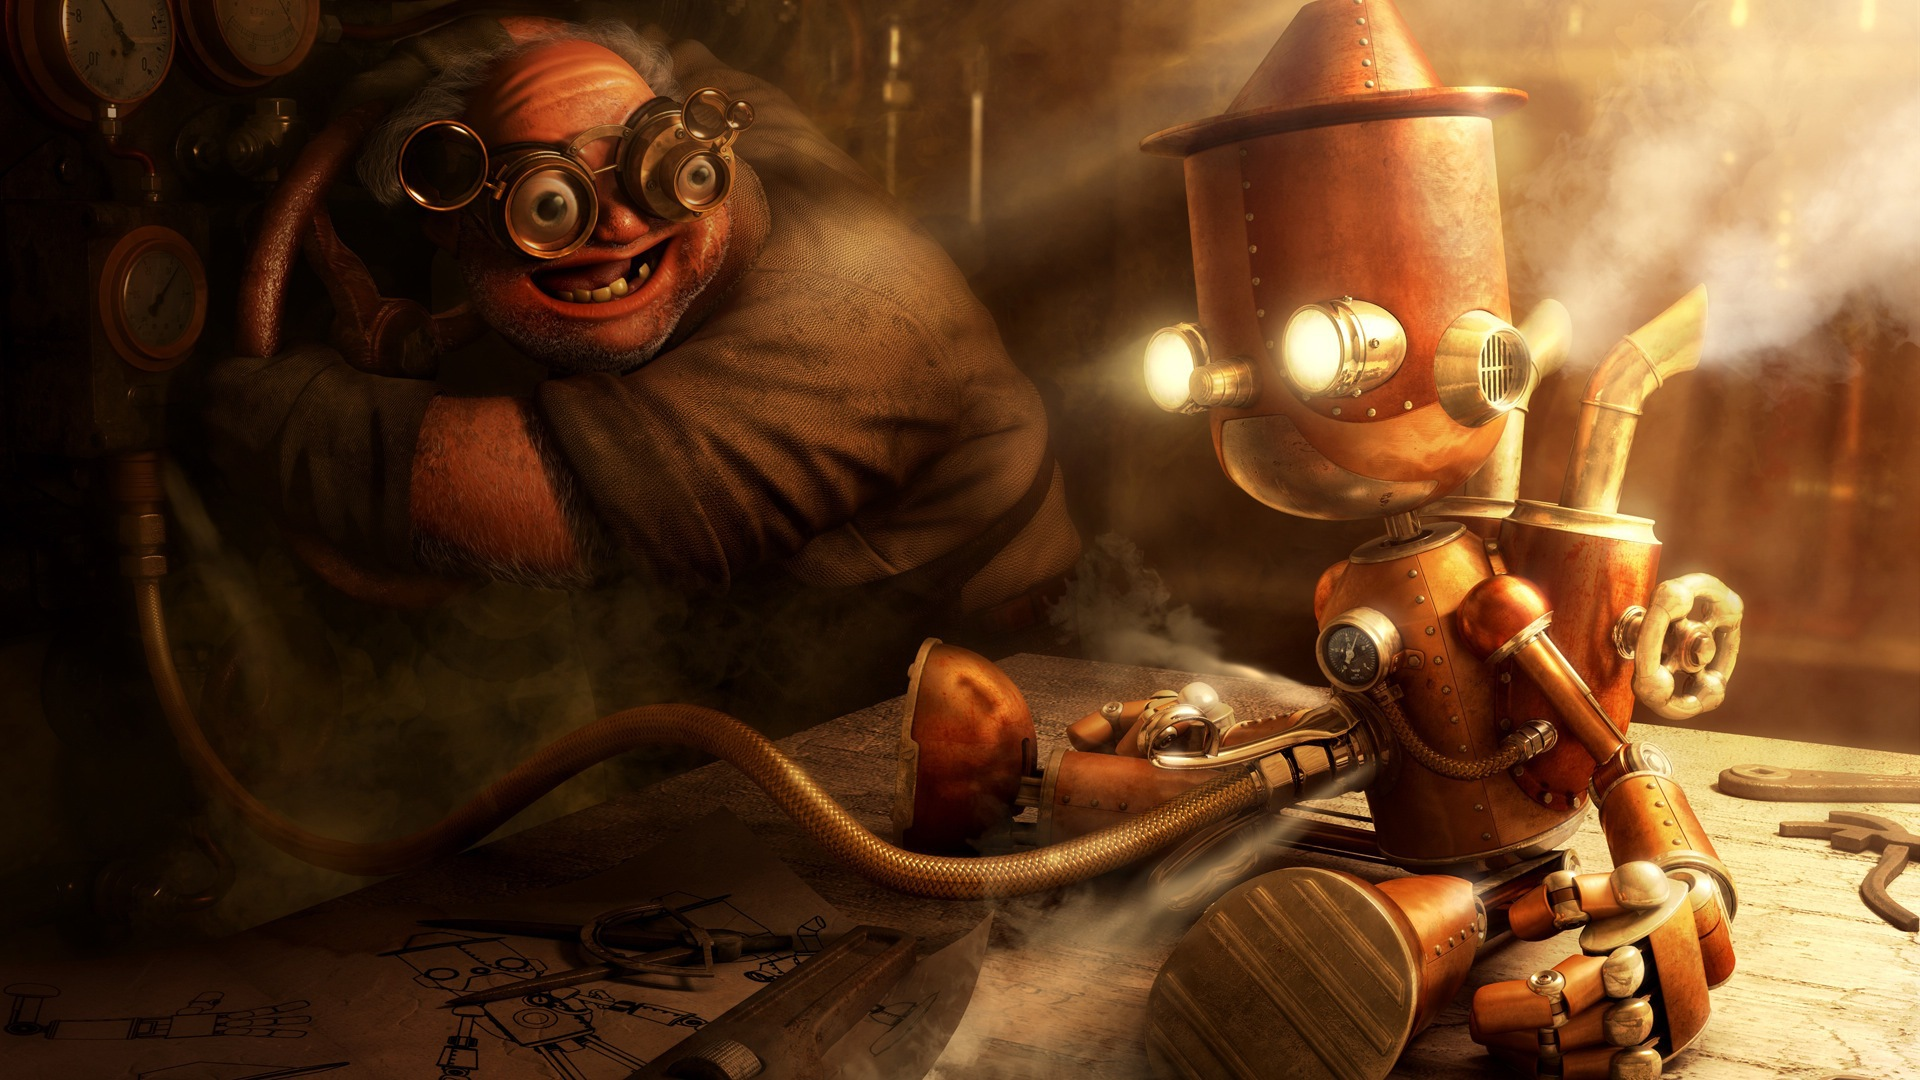 Pinocchio Steampunk wallpapers and images   wallpapers pictures 1920x1080